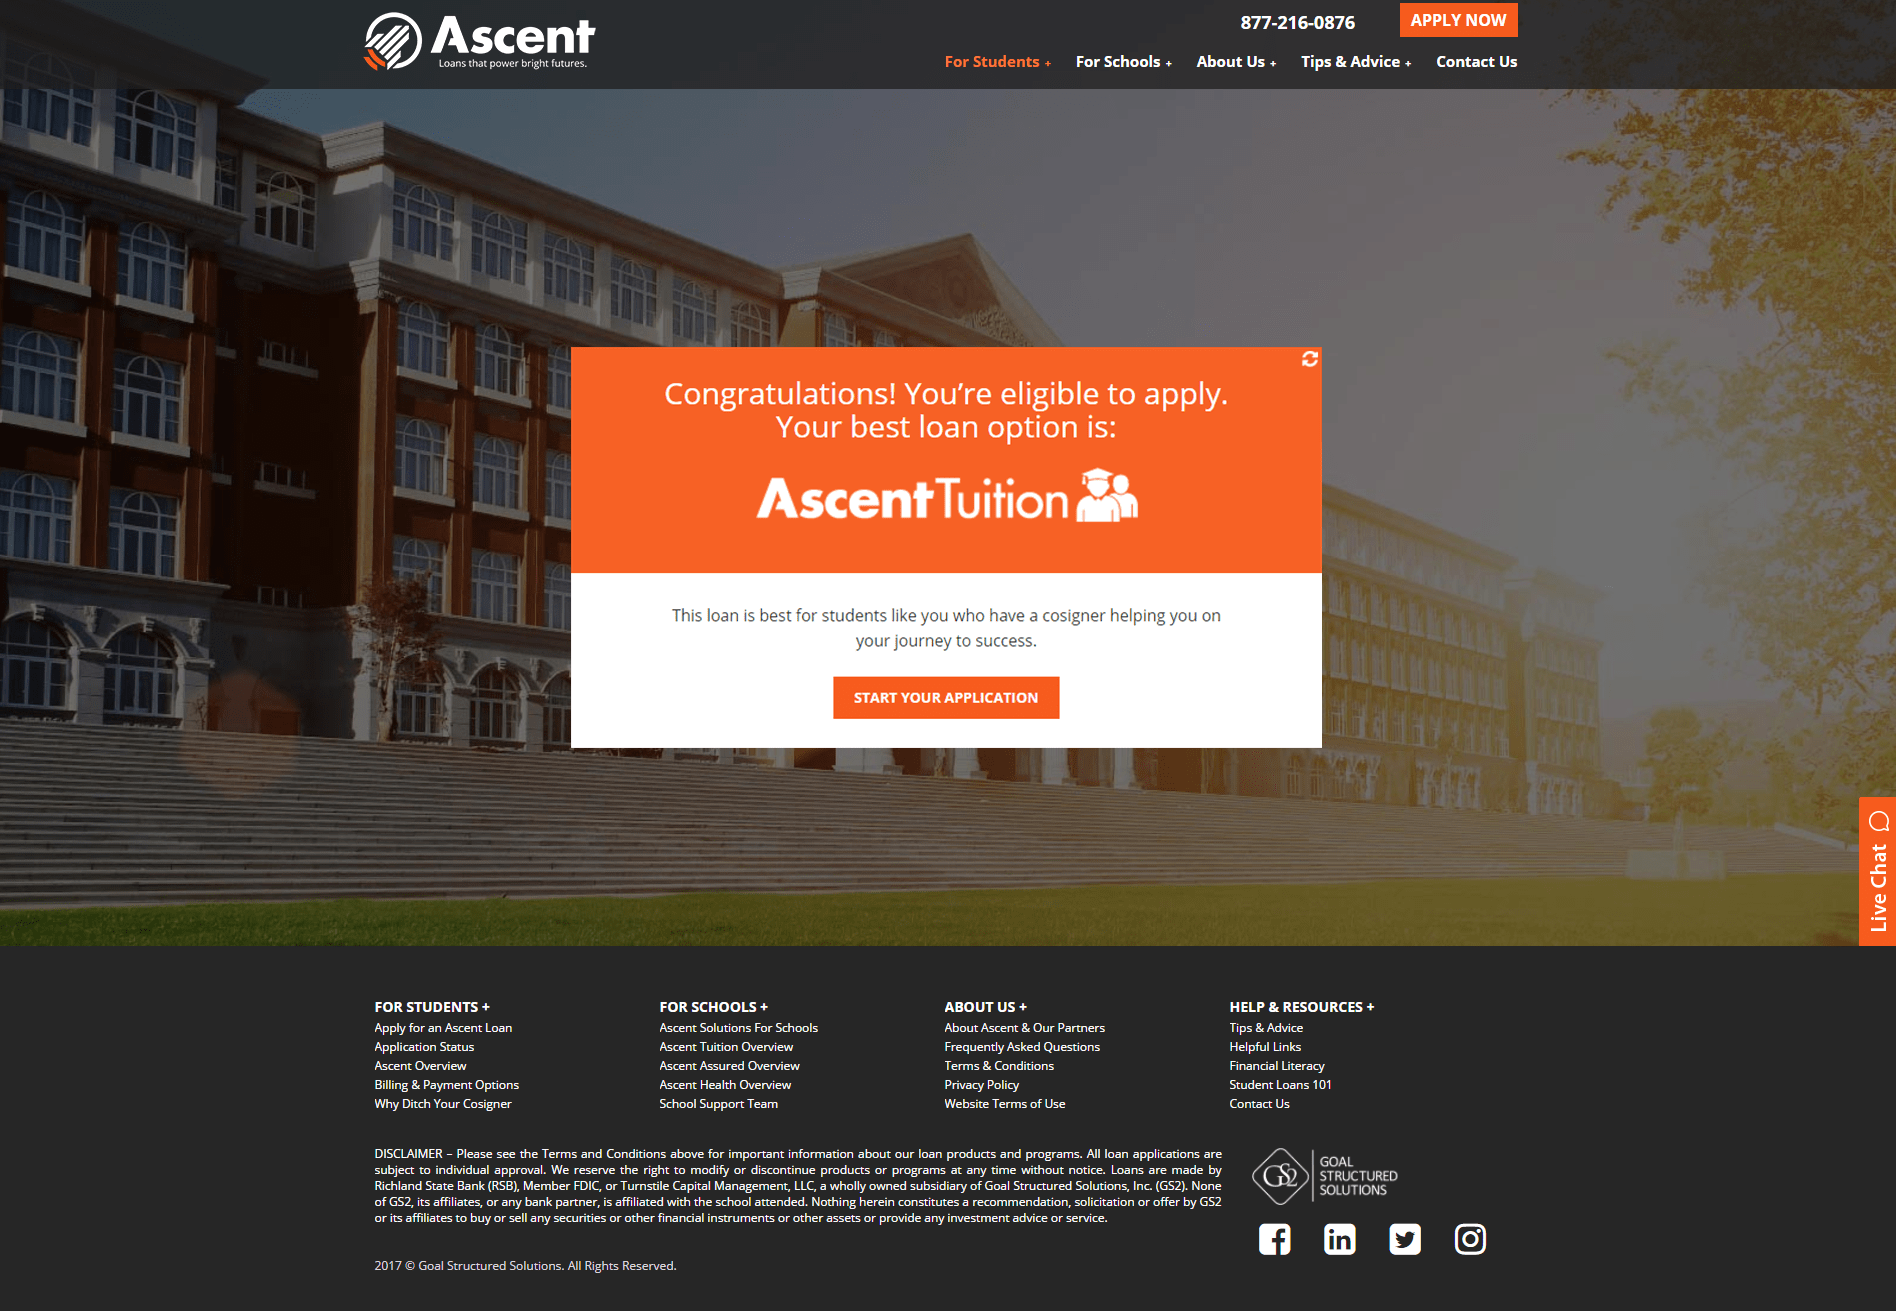 This is a screenshot of the Ascent Tuition website.